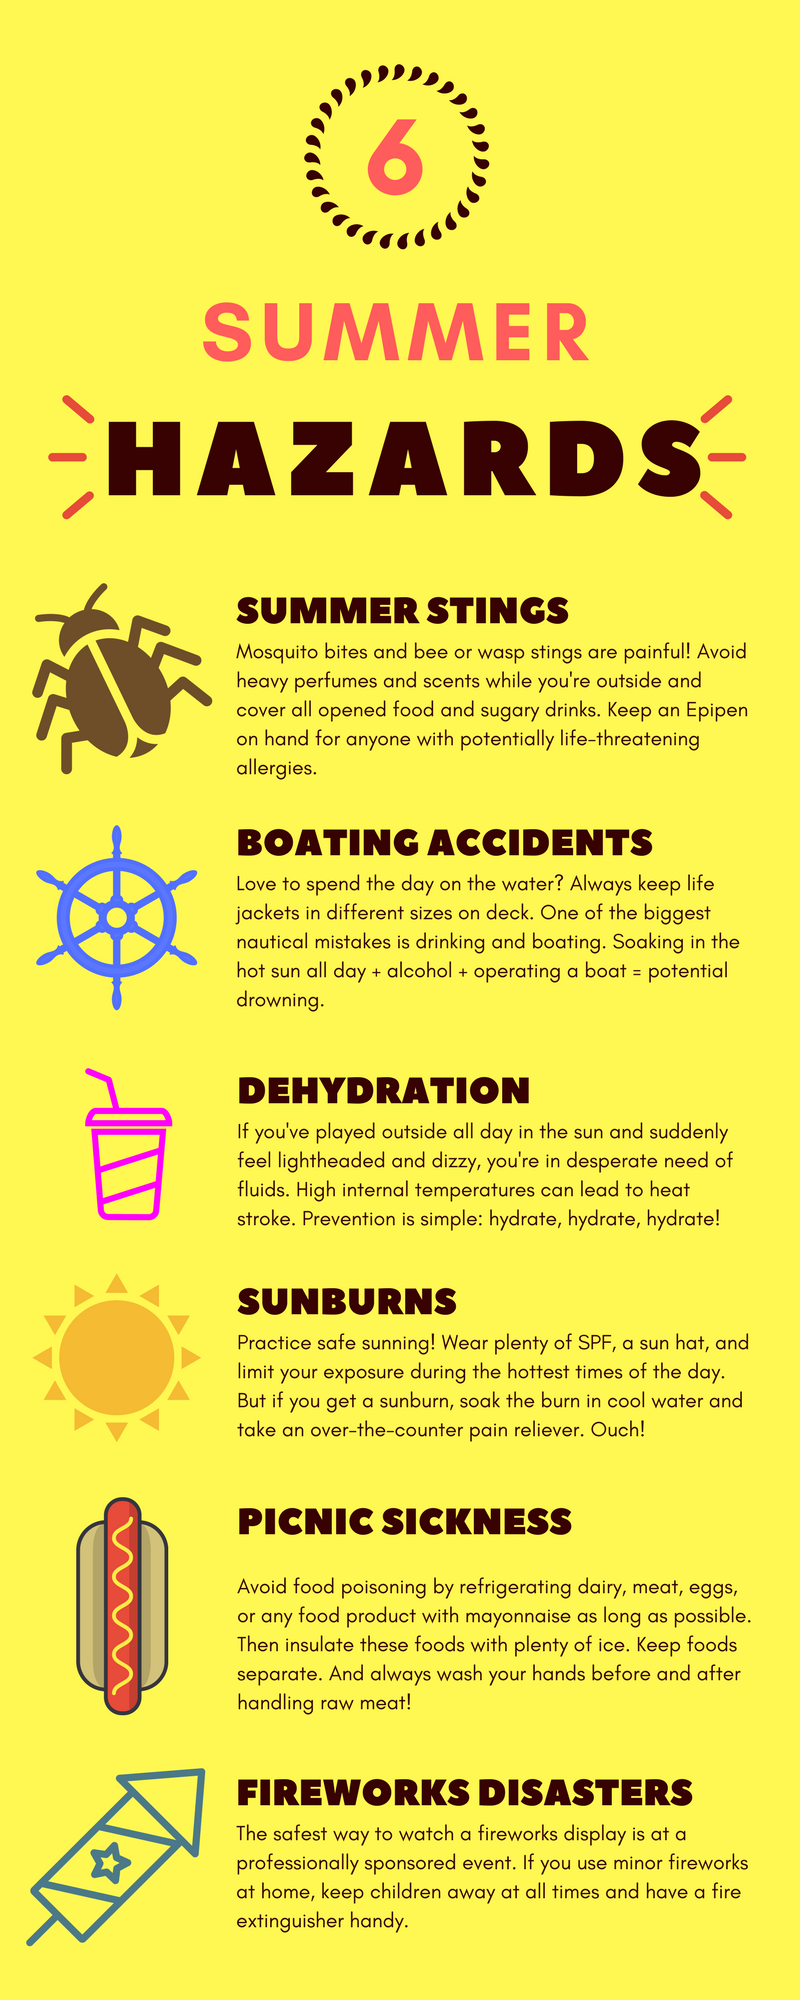 Summer hazards